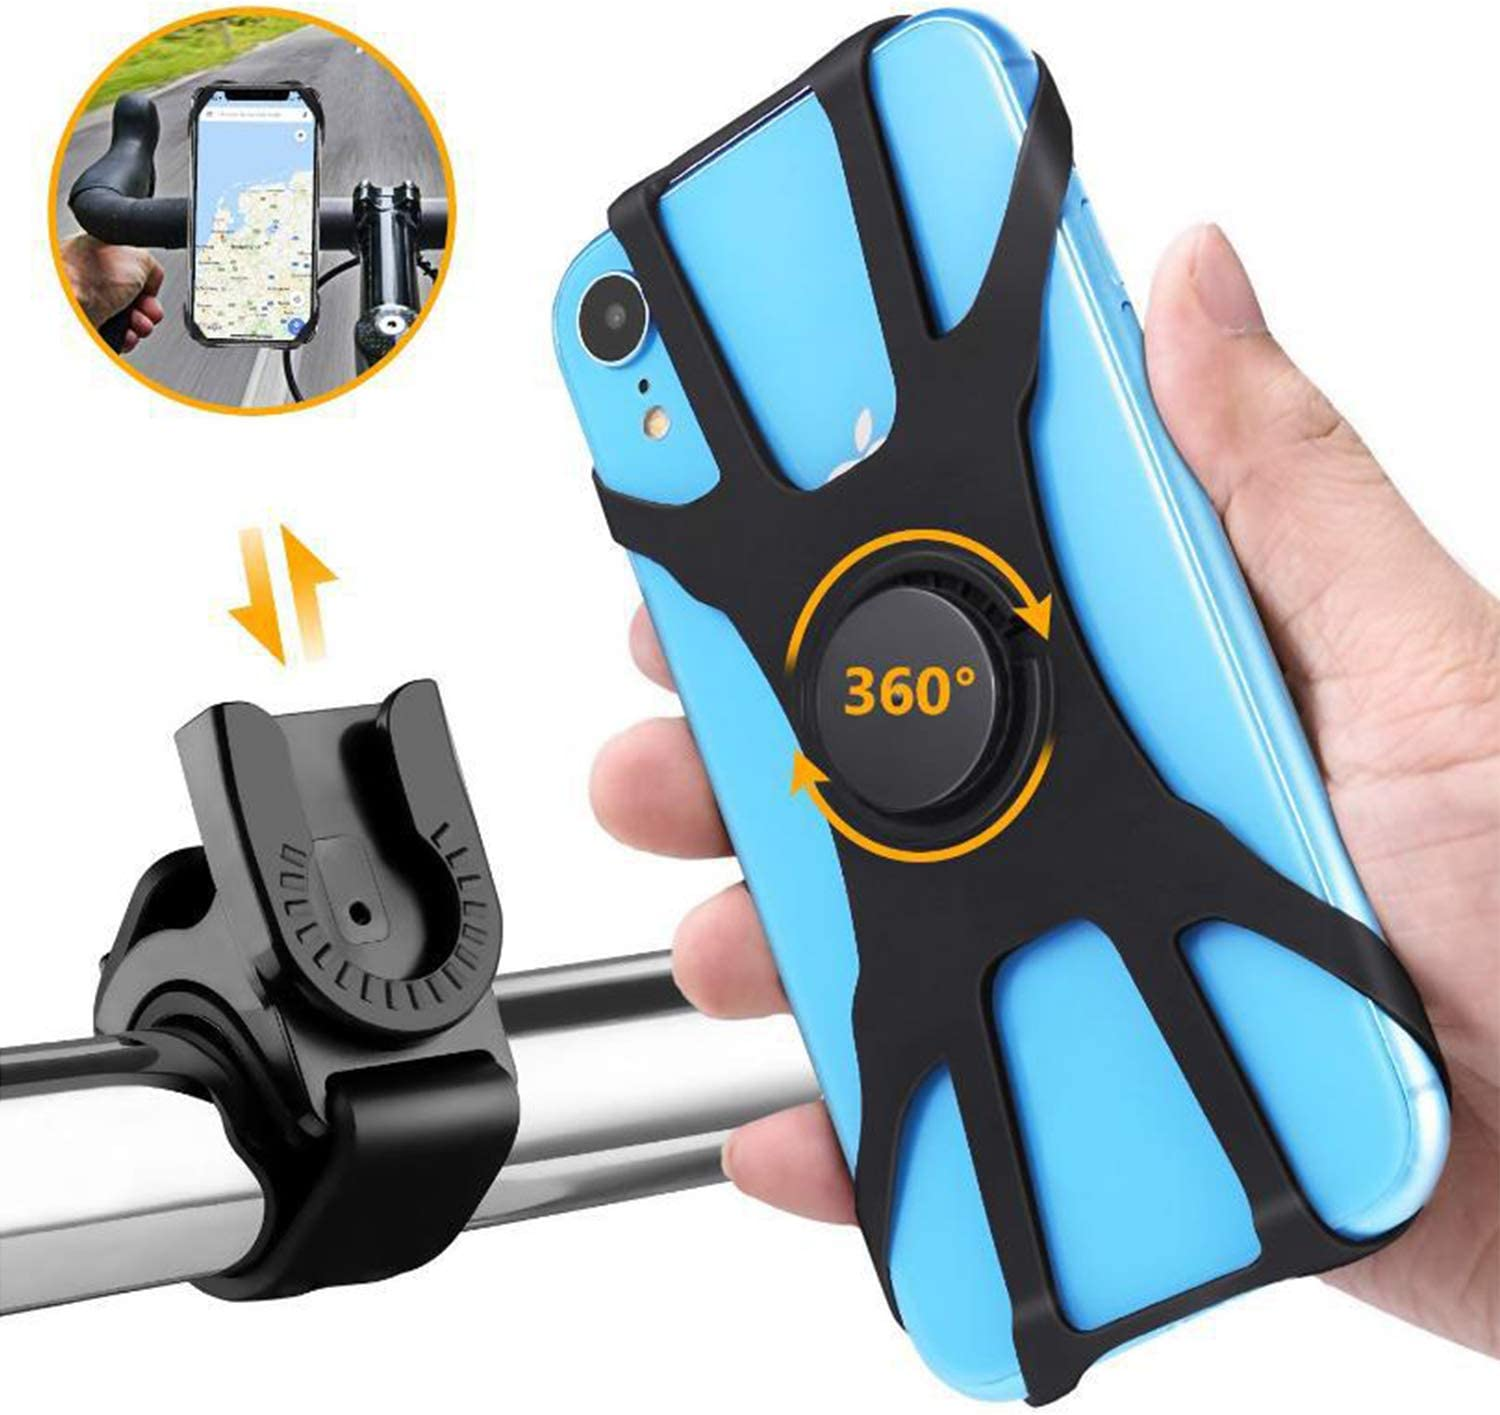 . Bike /& Motorcycle Phone Mount Samsung or Any Smartphone 360/° Rotatable Bicycle /& Motorcycle Handlebar Cell Phone Holder Universal fit for iPhone Other 4.5-7.5 Phones